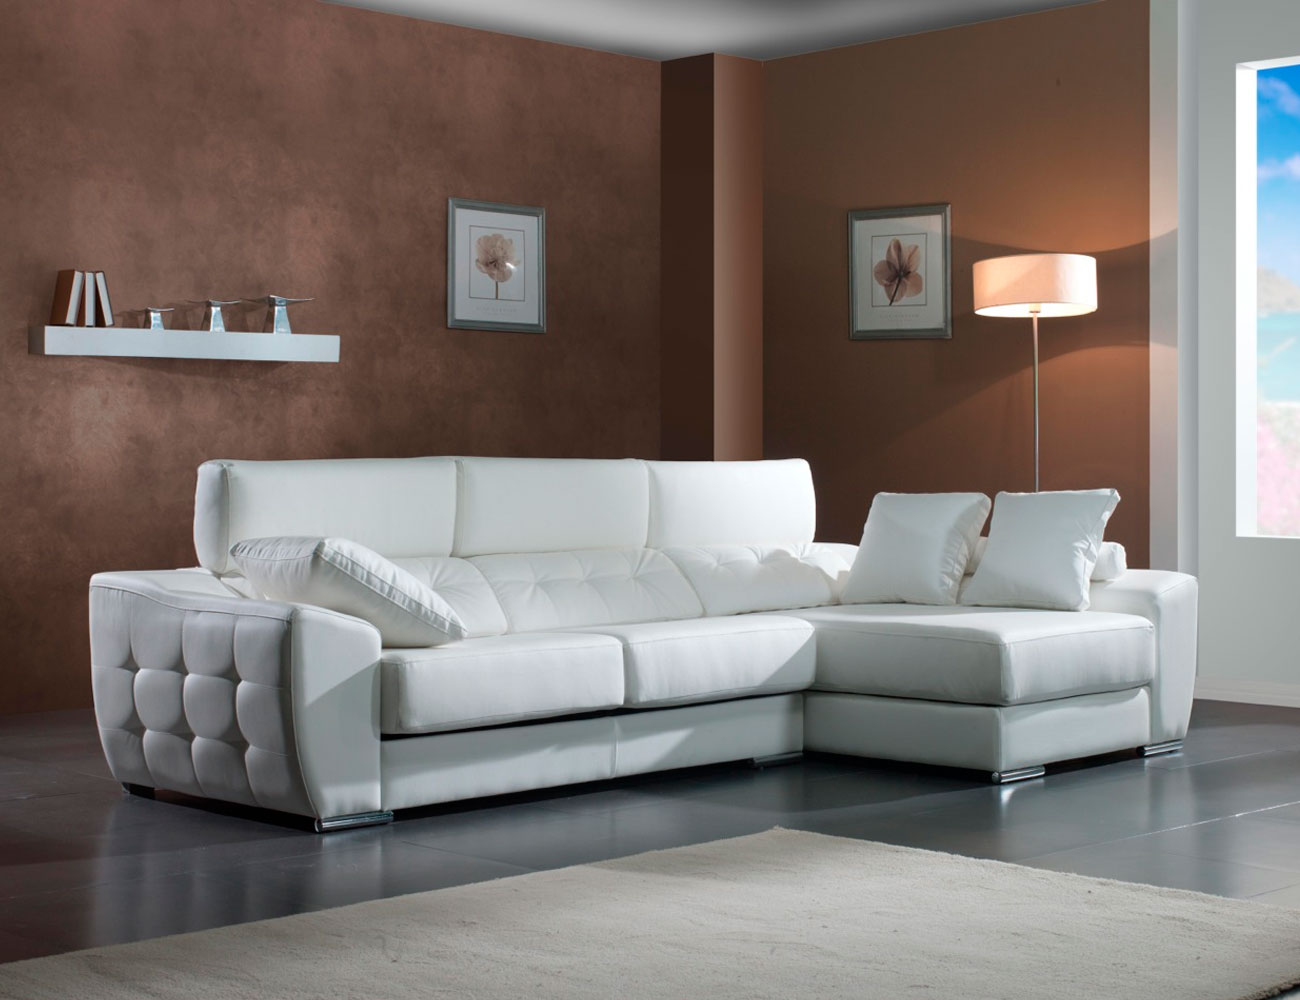 Sof chaiselongue ulisses con capiton 9171 factory for Sofas de polipiel